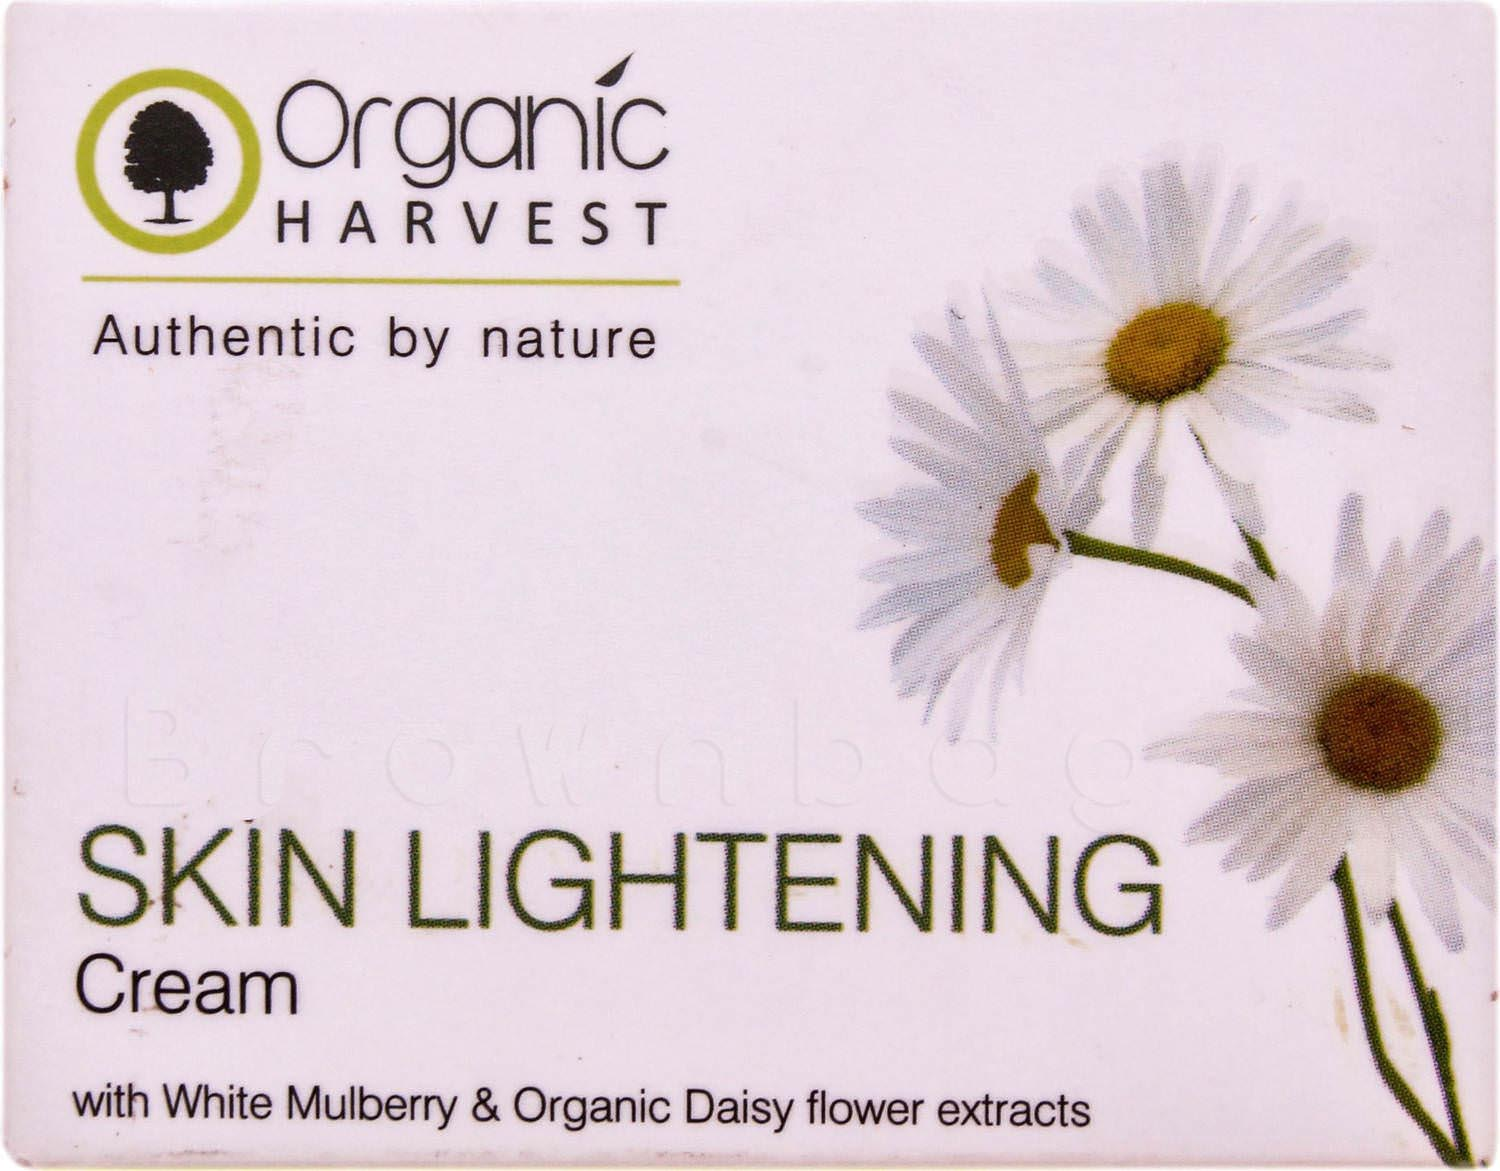 ORGANIC Harvest Skin Lightening Cream with White Mulberry & Organic Daisy Flower extracts